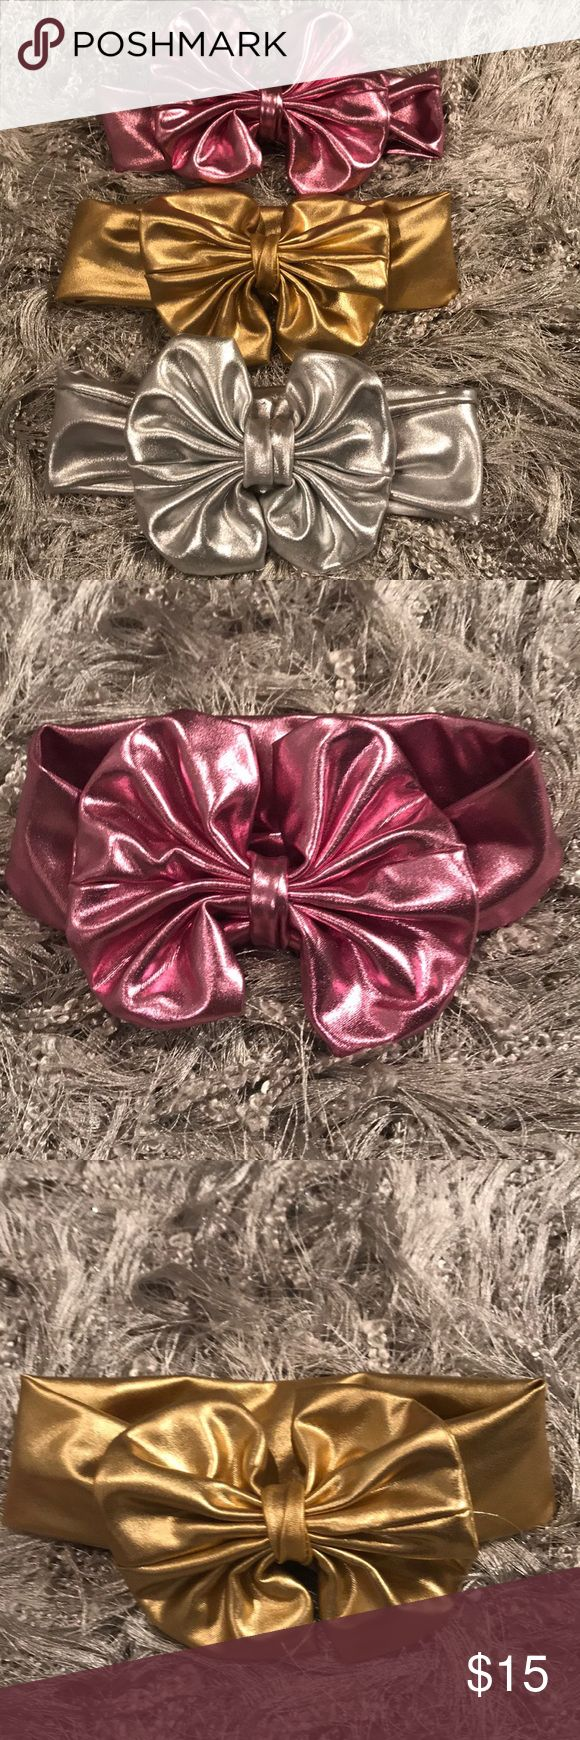 Baby Girl Headband Bow Bundle Set of 3 baby Girl Headband bows! Light pink, gold and silver Accessories Hair Accessories